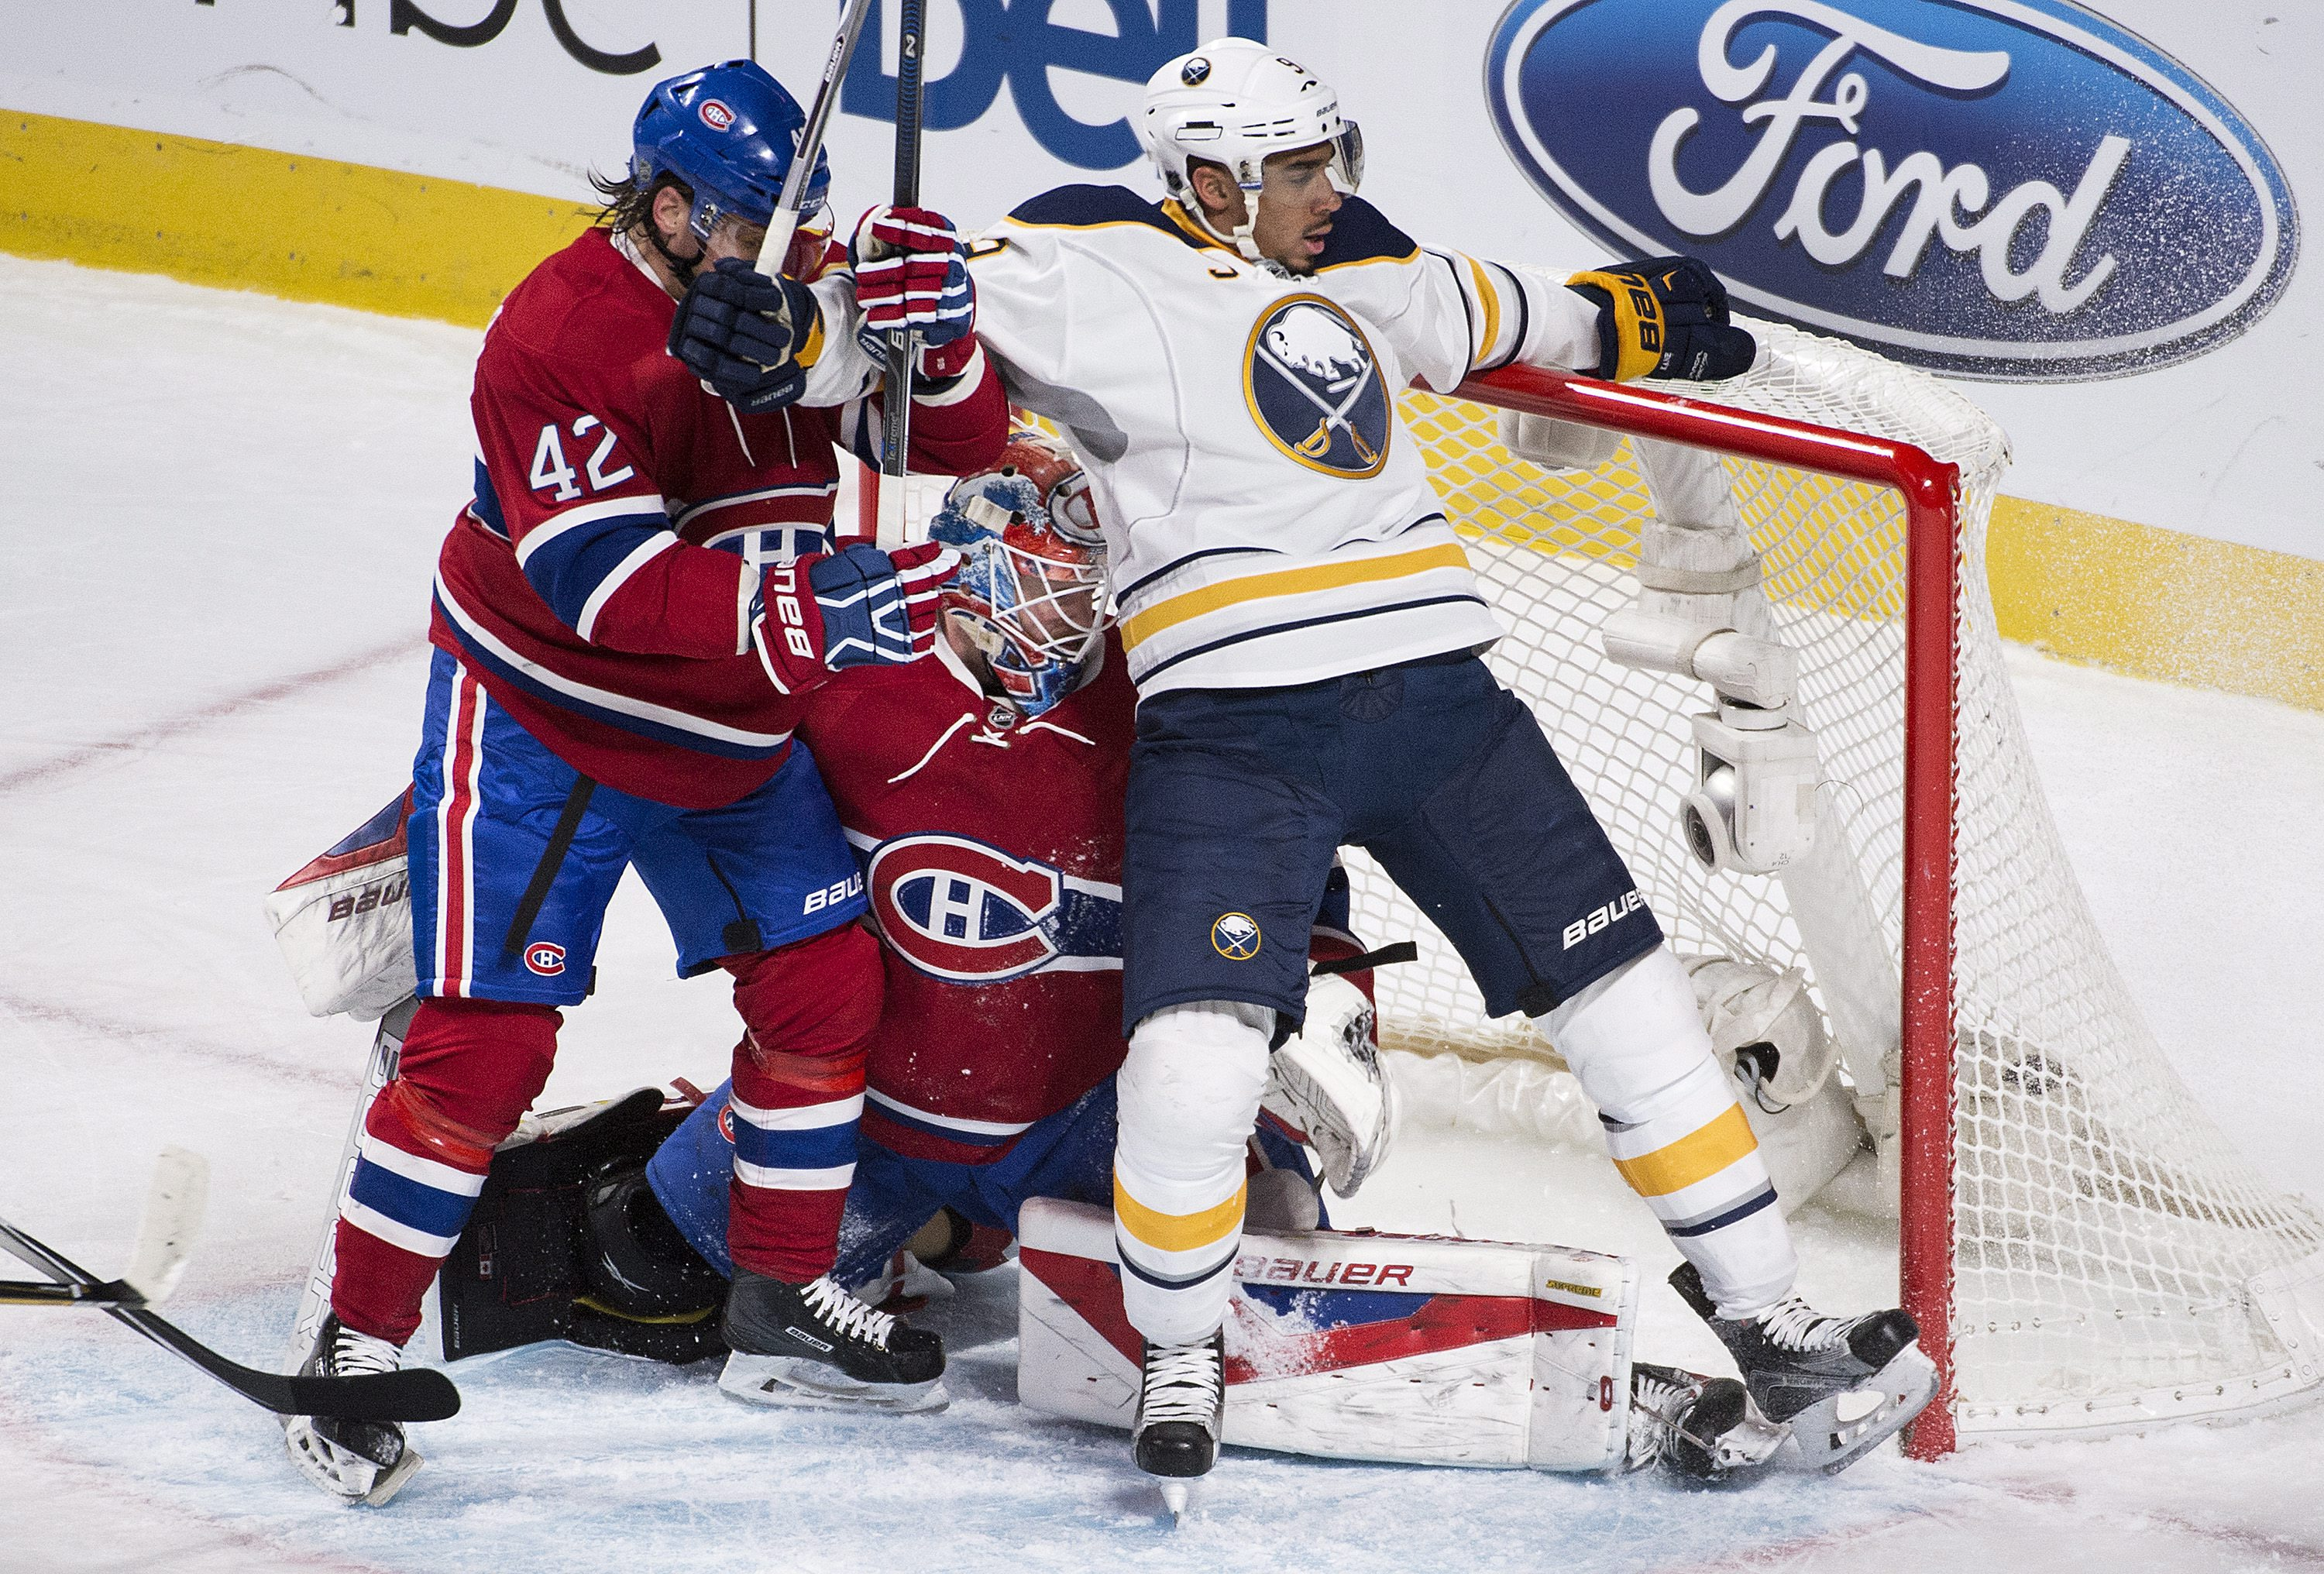 Buffalo Sabres' Evander Kane, right, collides with Montreal Canadiens goaltender Mike Condon as Canadiens' Sven Andrighetto (42) defends during the first period of an NHL hockey game Thursday, March 10, 2016, in Montreal. (Graham Hughes/The Canadian Press